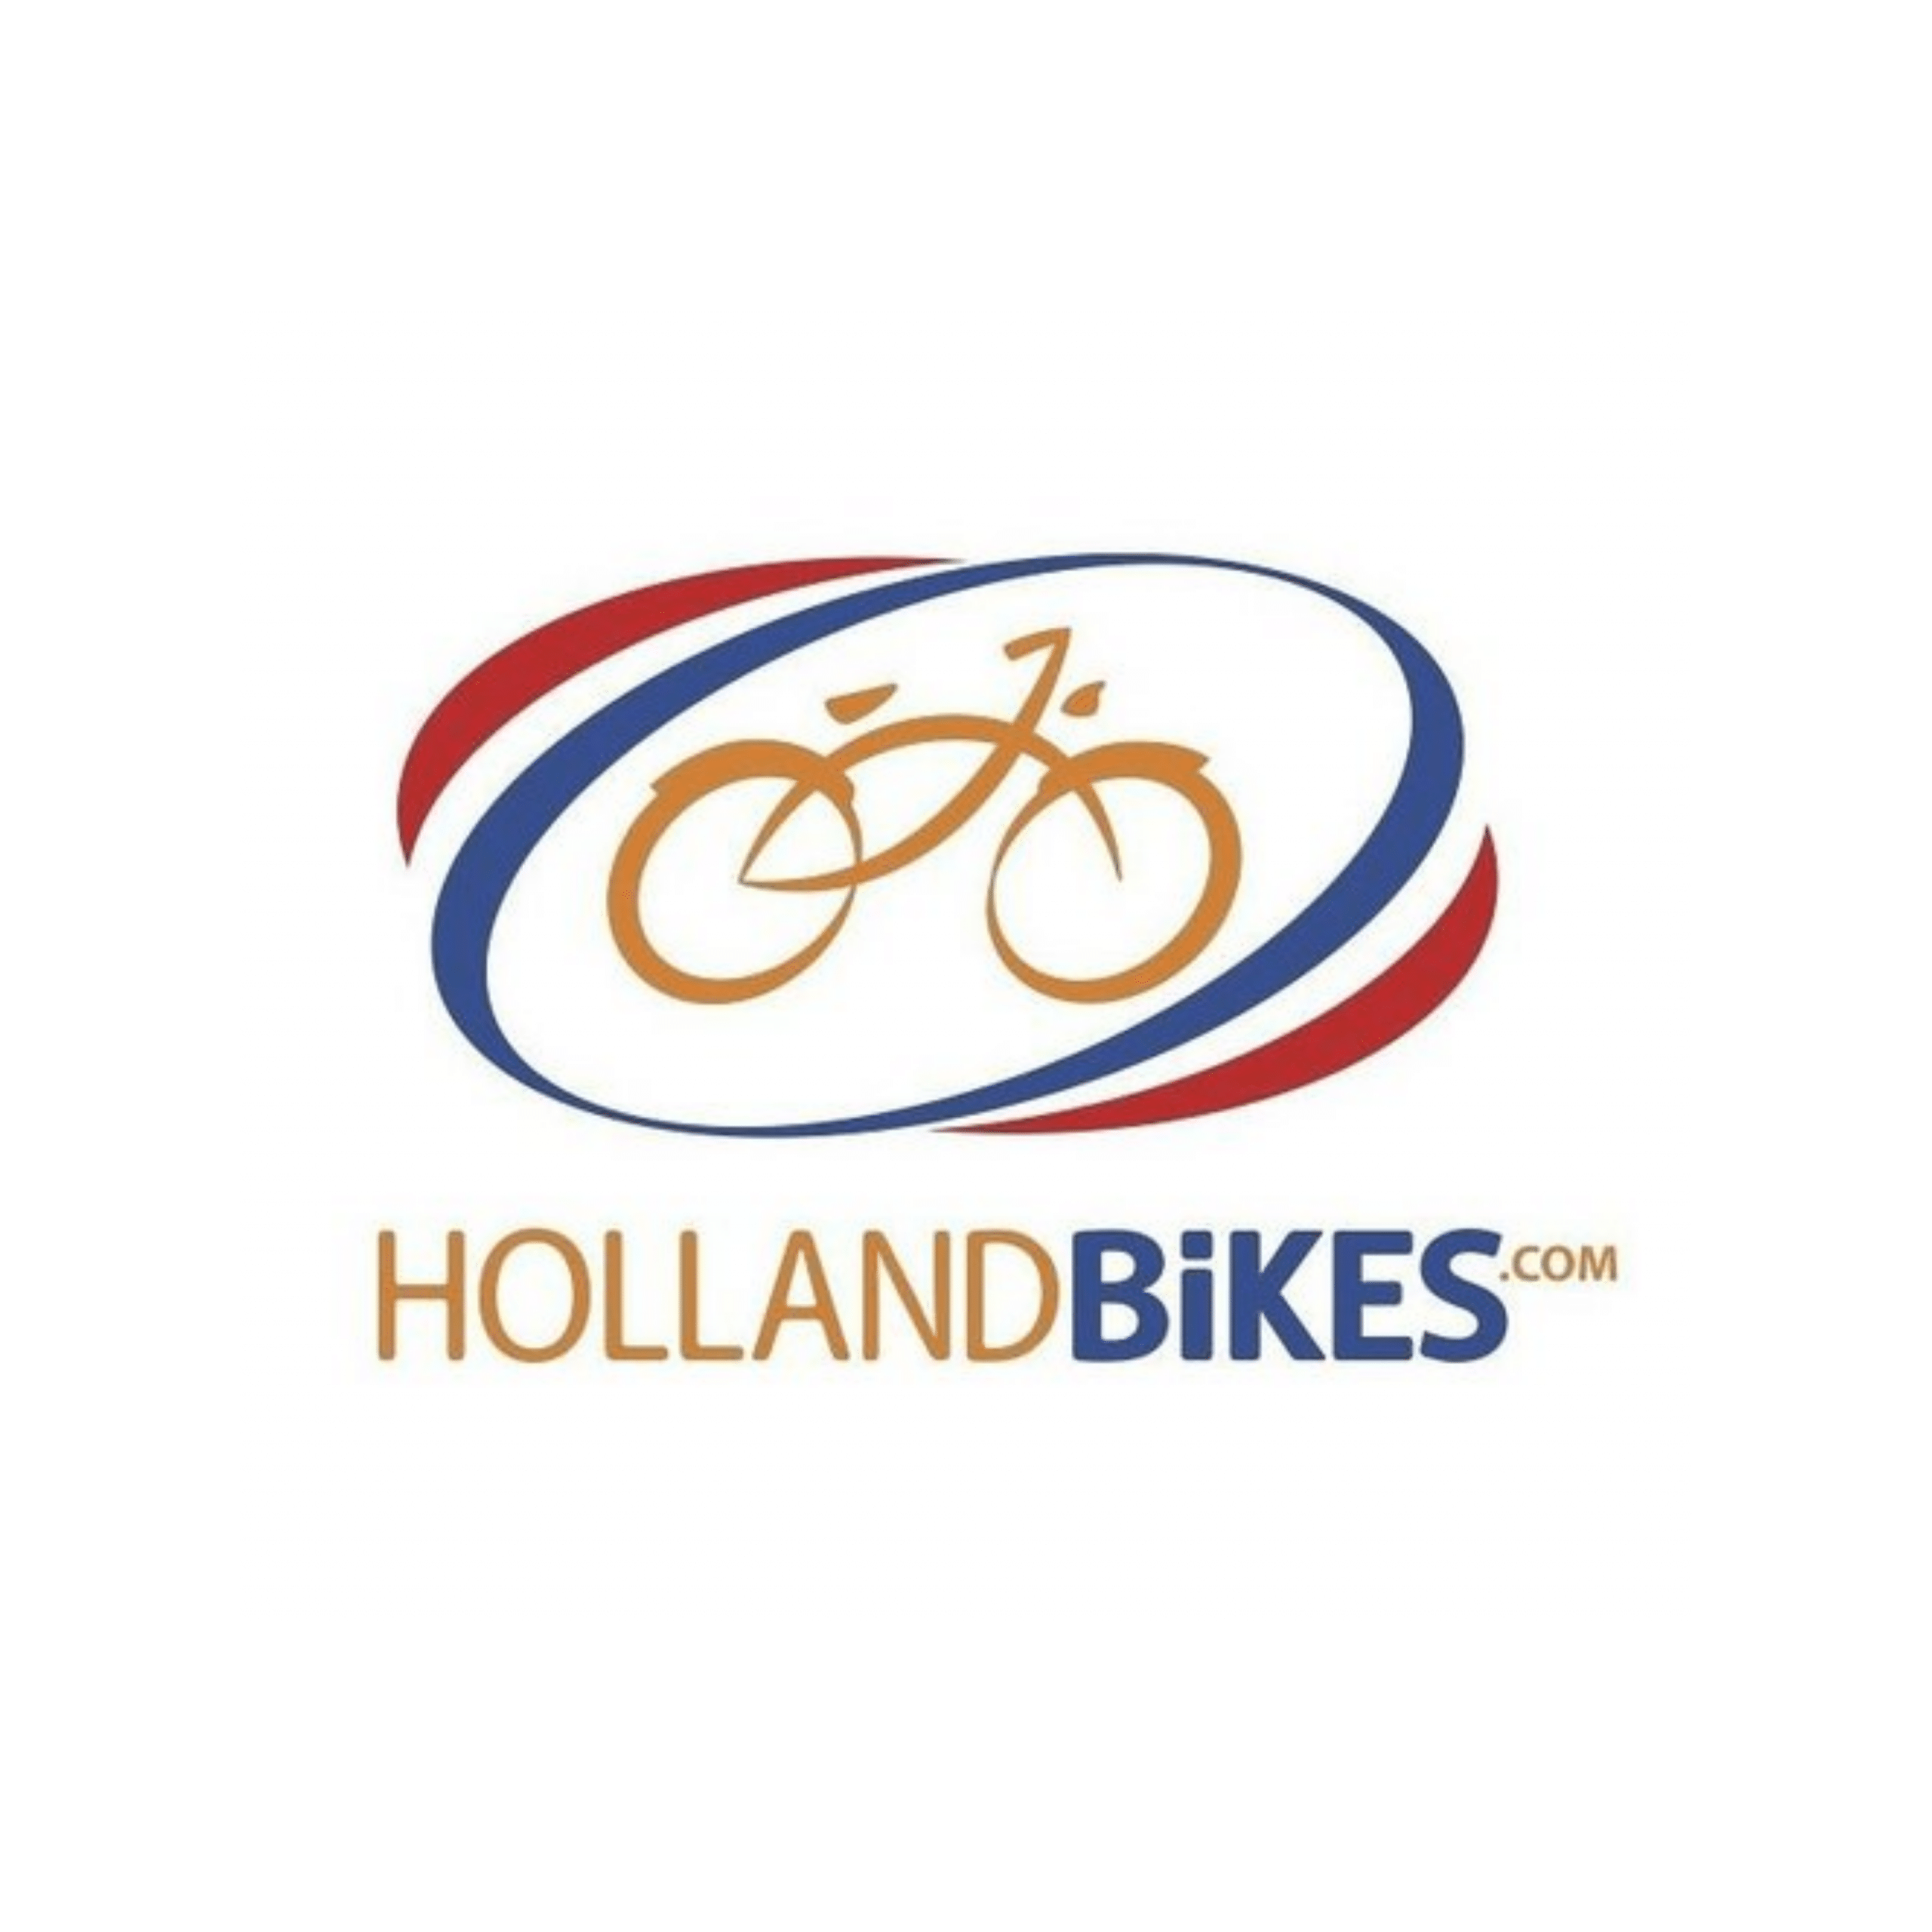 Holland bikes png